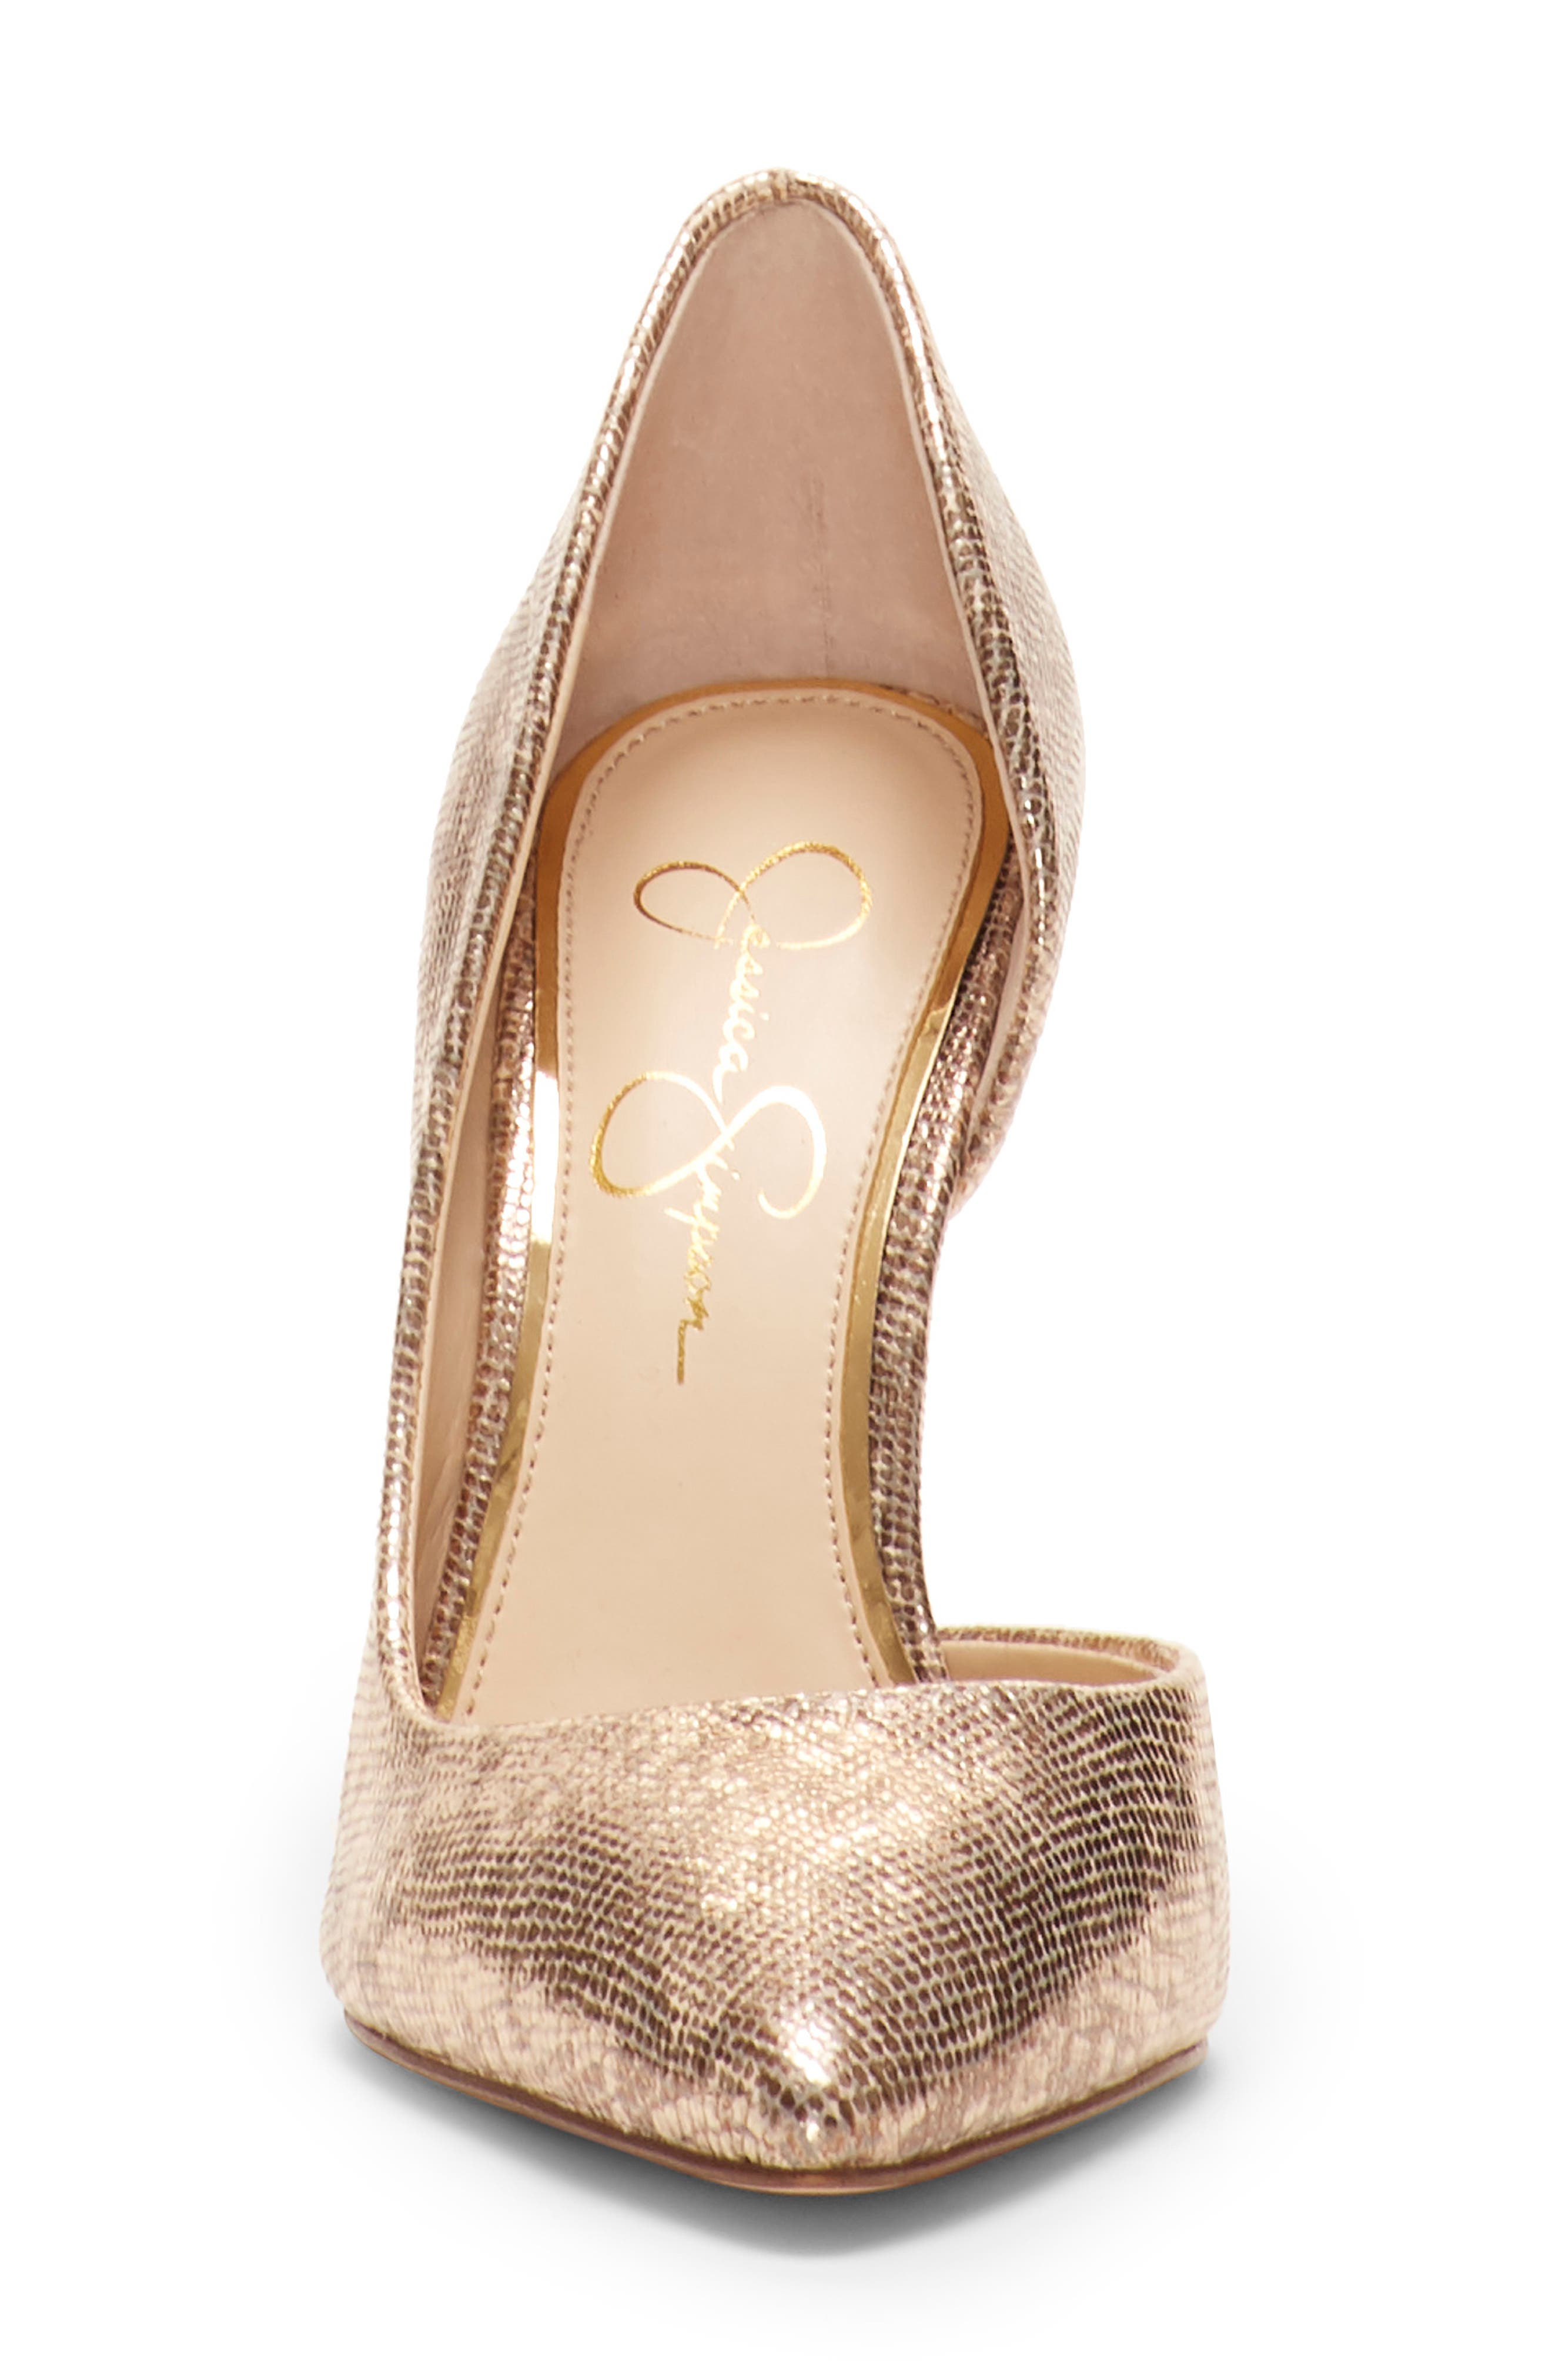 JESSICA SIMPSON,                             Pheona Pump,                             Alternate thumbnail 3, color,                             KARAT GOLD